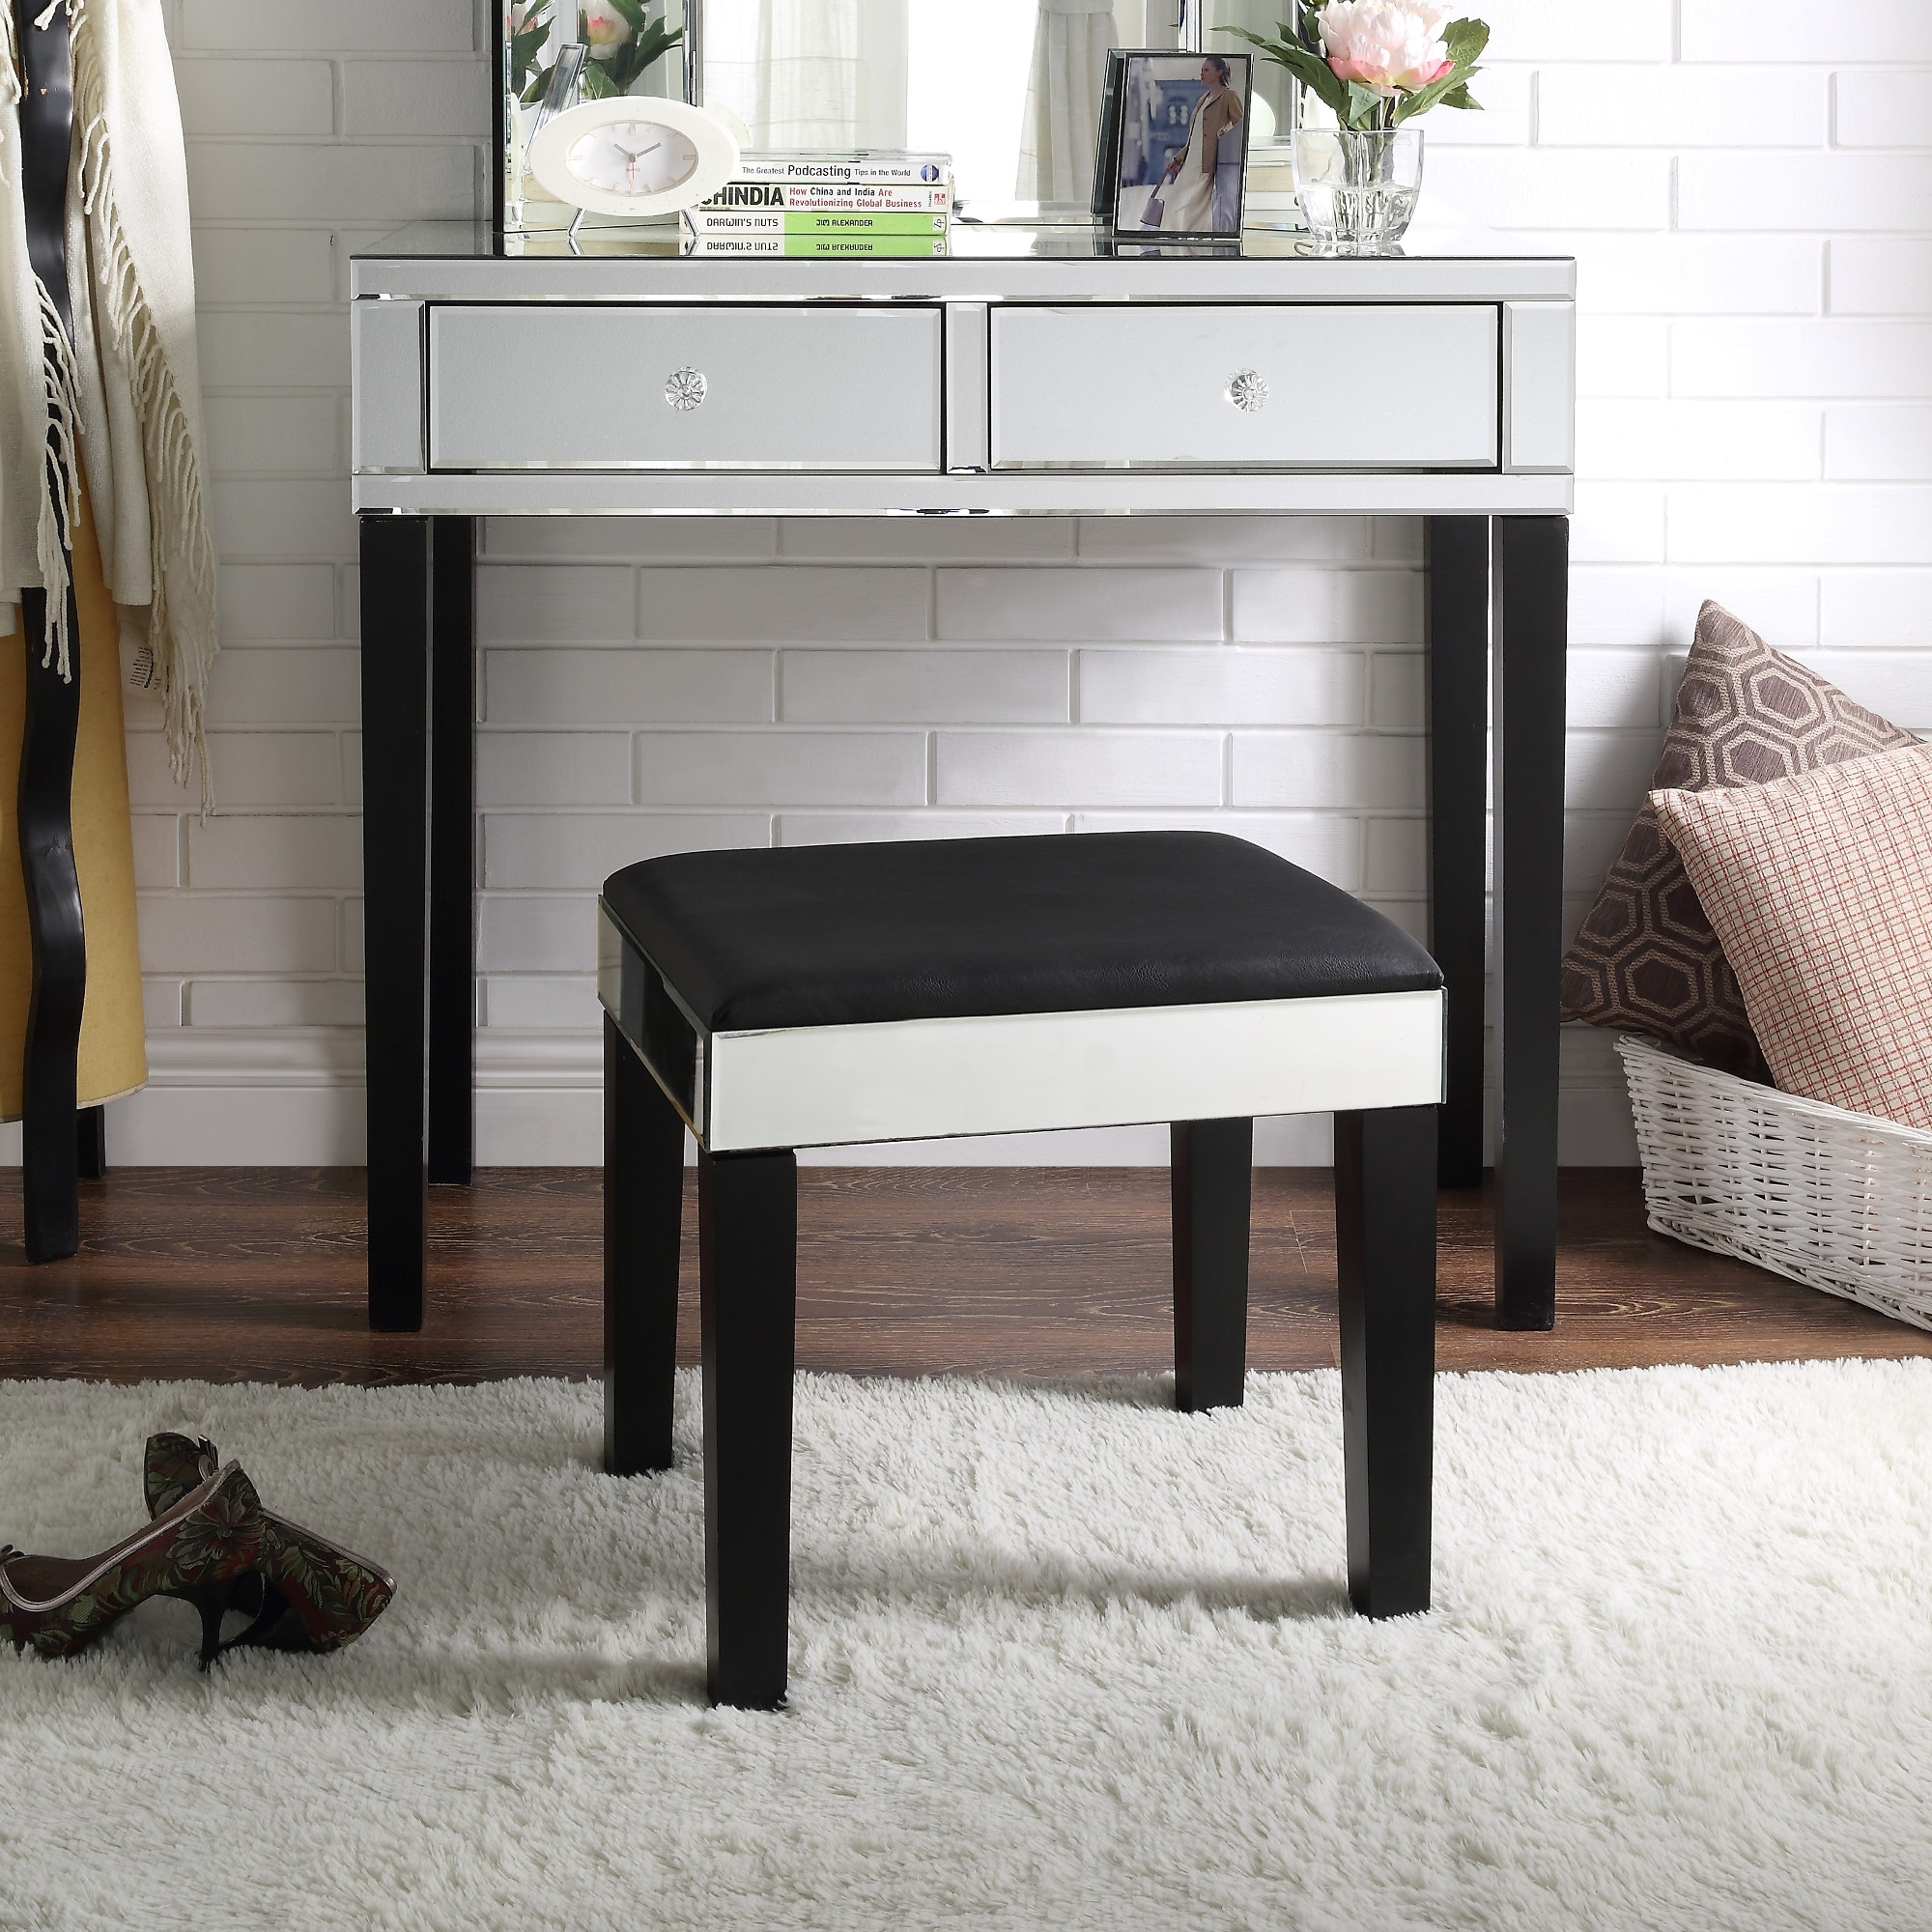 Inspired Home Black Jewelry Furniture Mirrored 2-Drawer